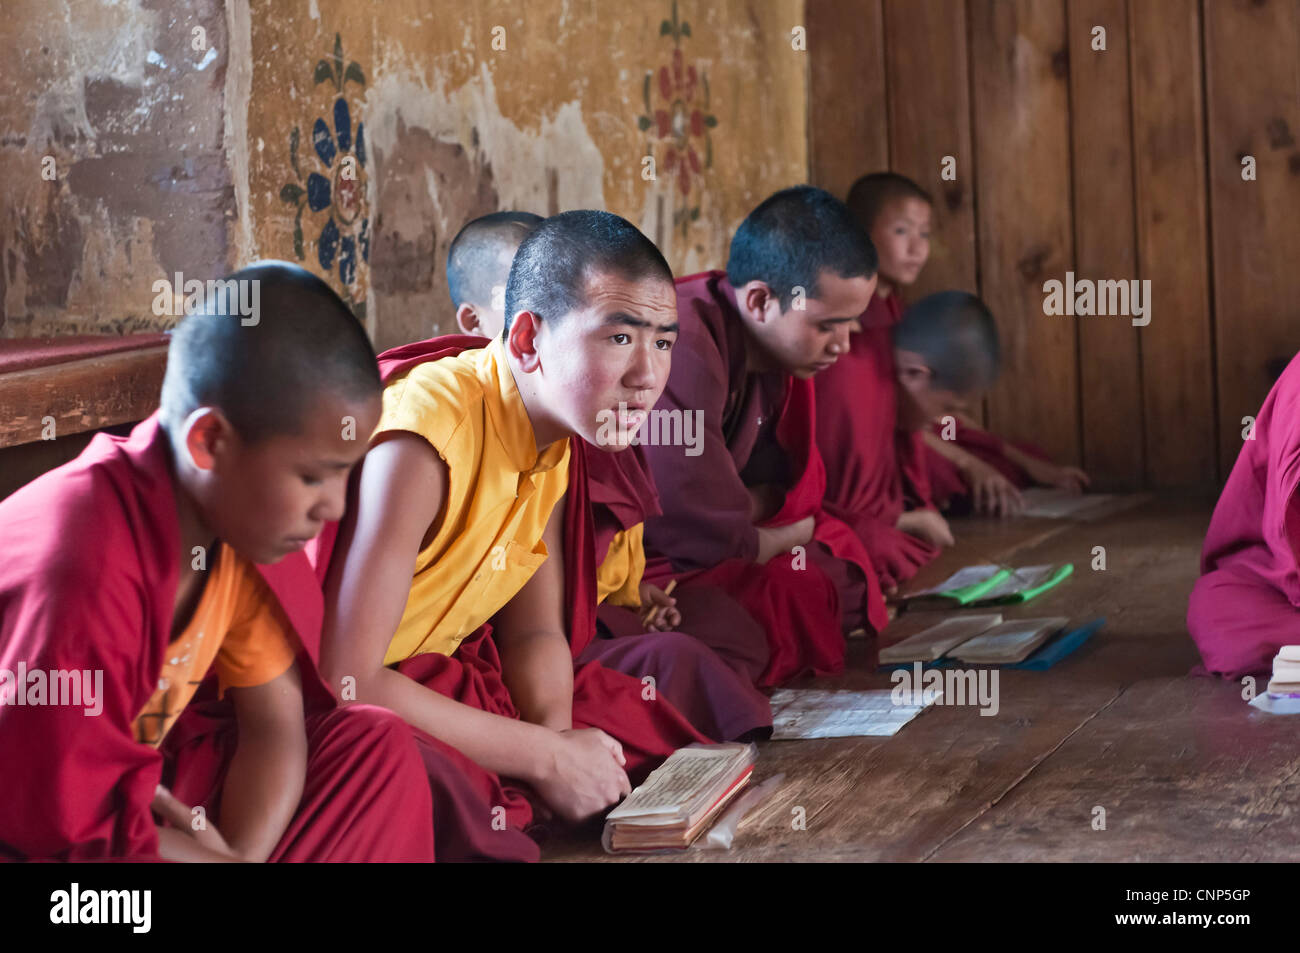 Asia, Bhutan. Young monks chanting in the Temple of the Divine Madman - Stock Image